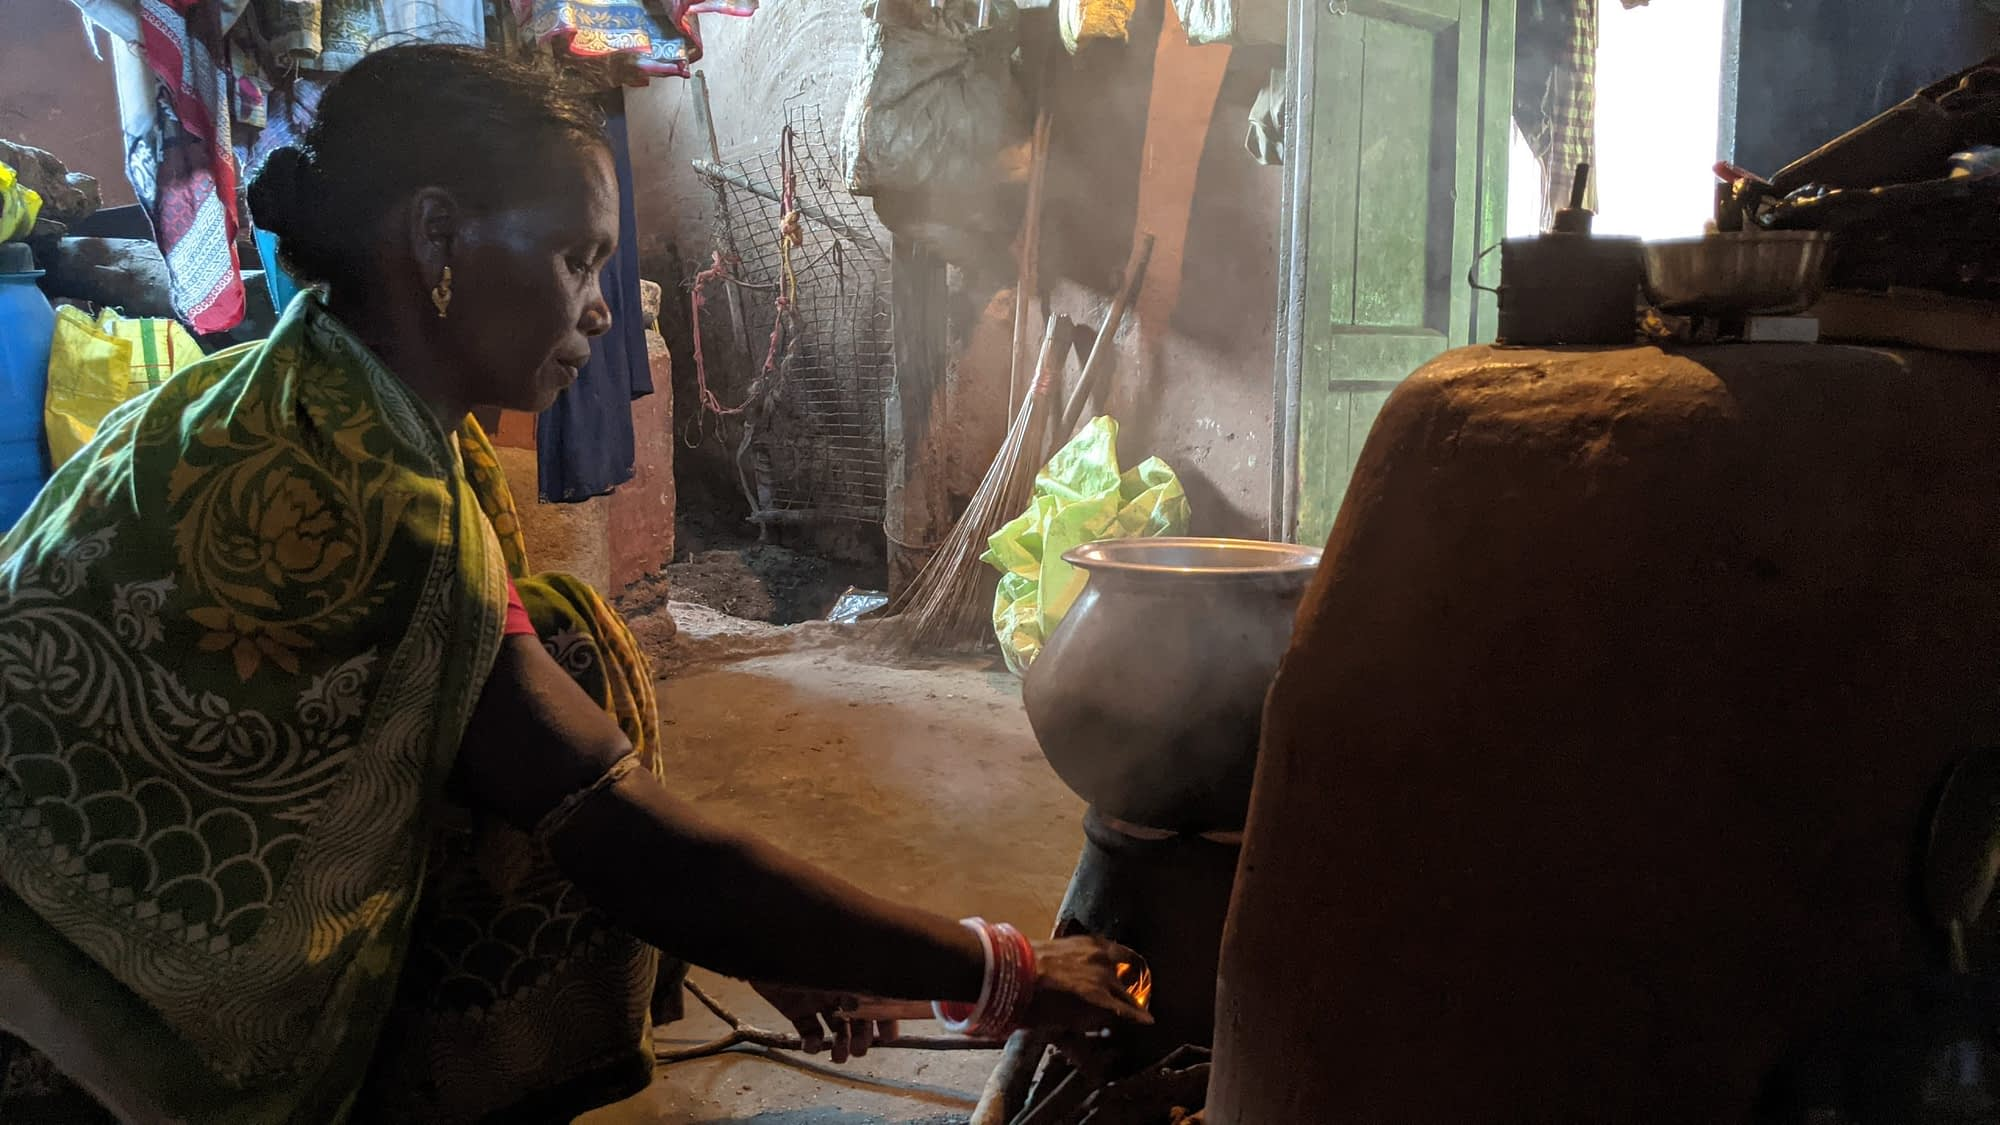 Anita Naik lights up her wood fire stove to prepare food, at her family home in the village of Badbil, in the Mayurbhanj district of India's Odisha state. (Photo: CIMMYT)